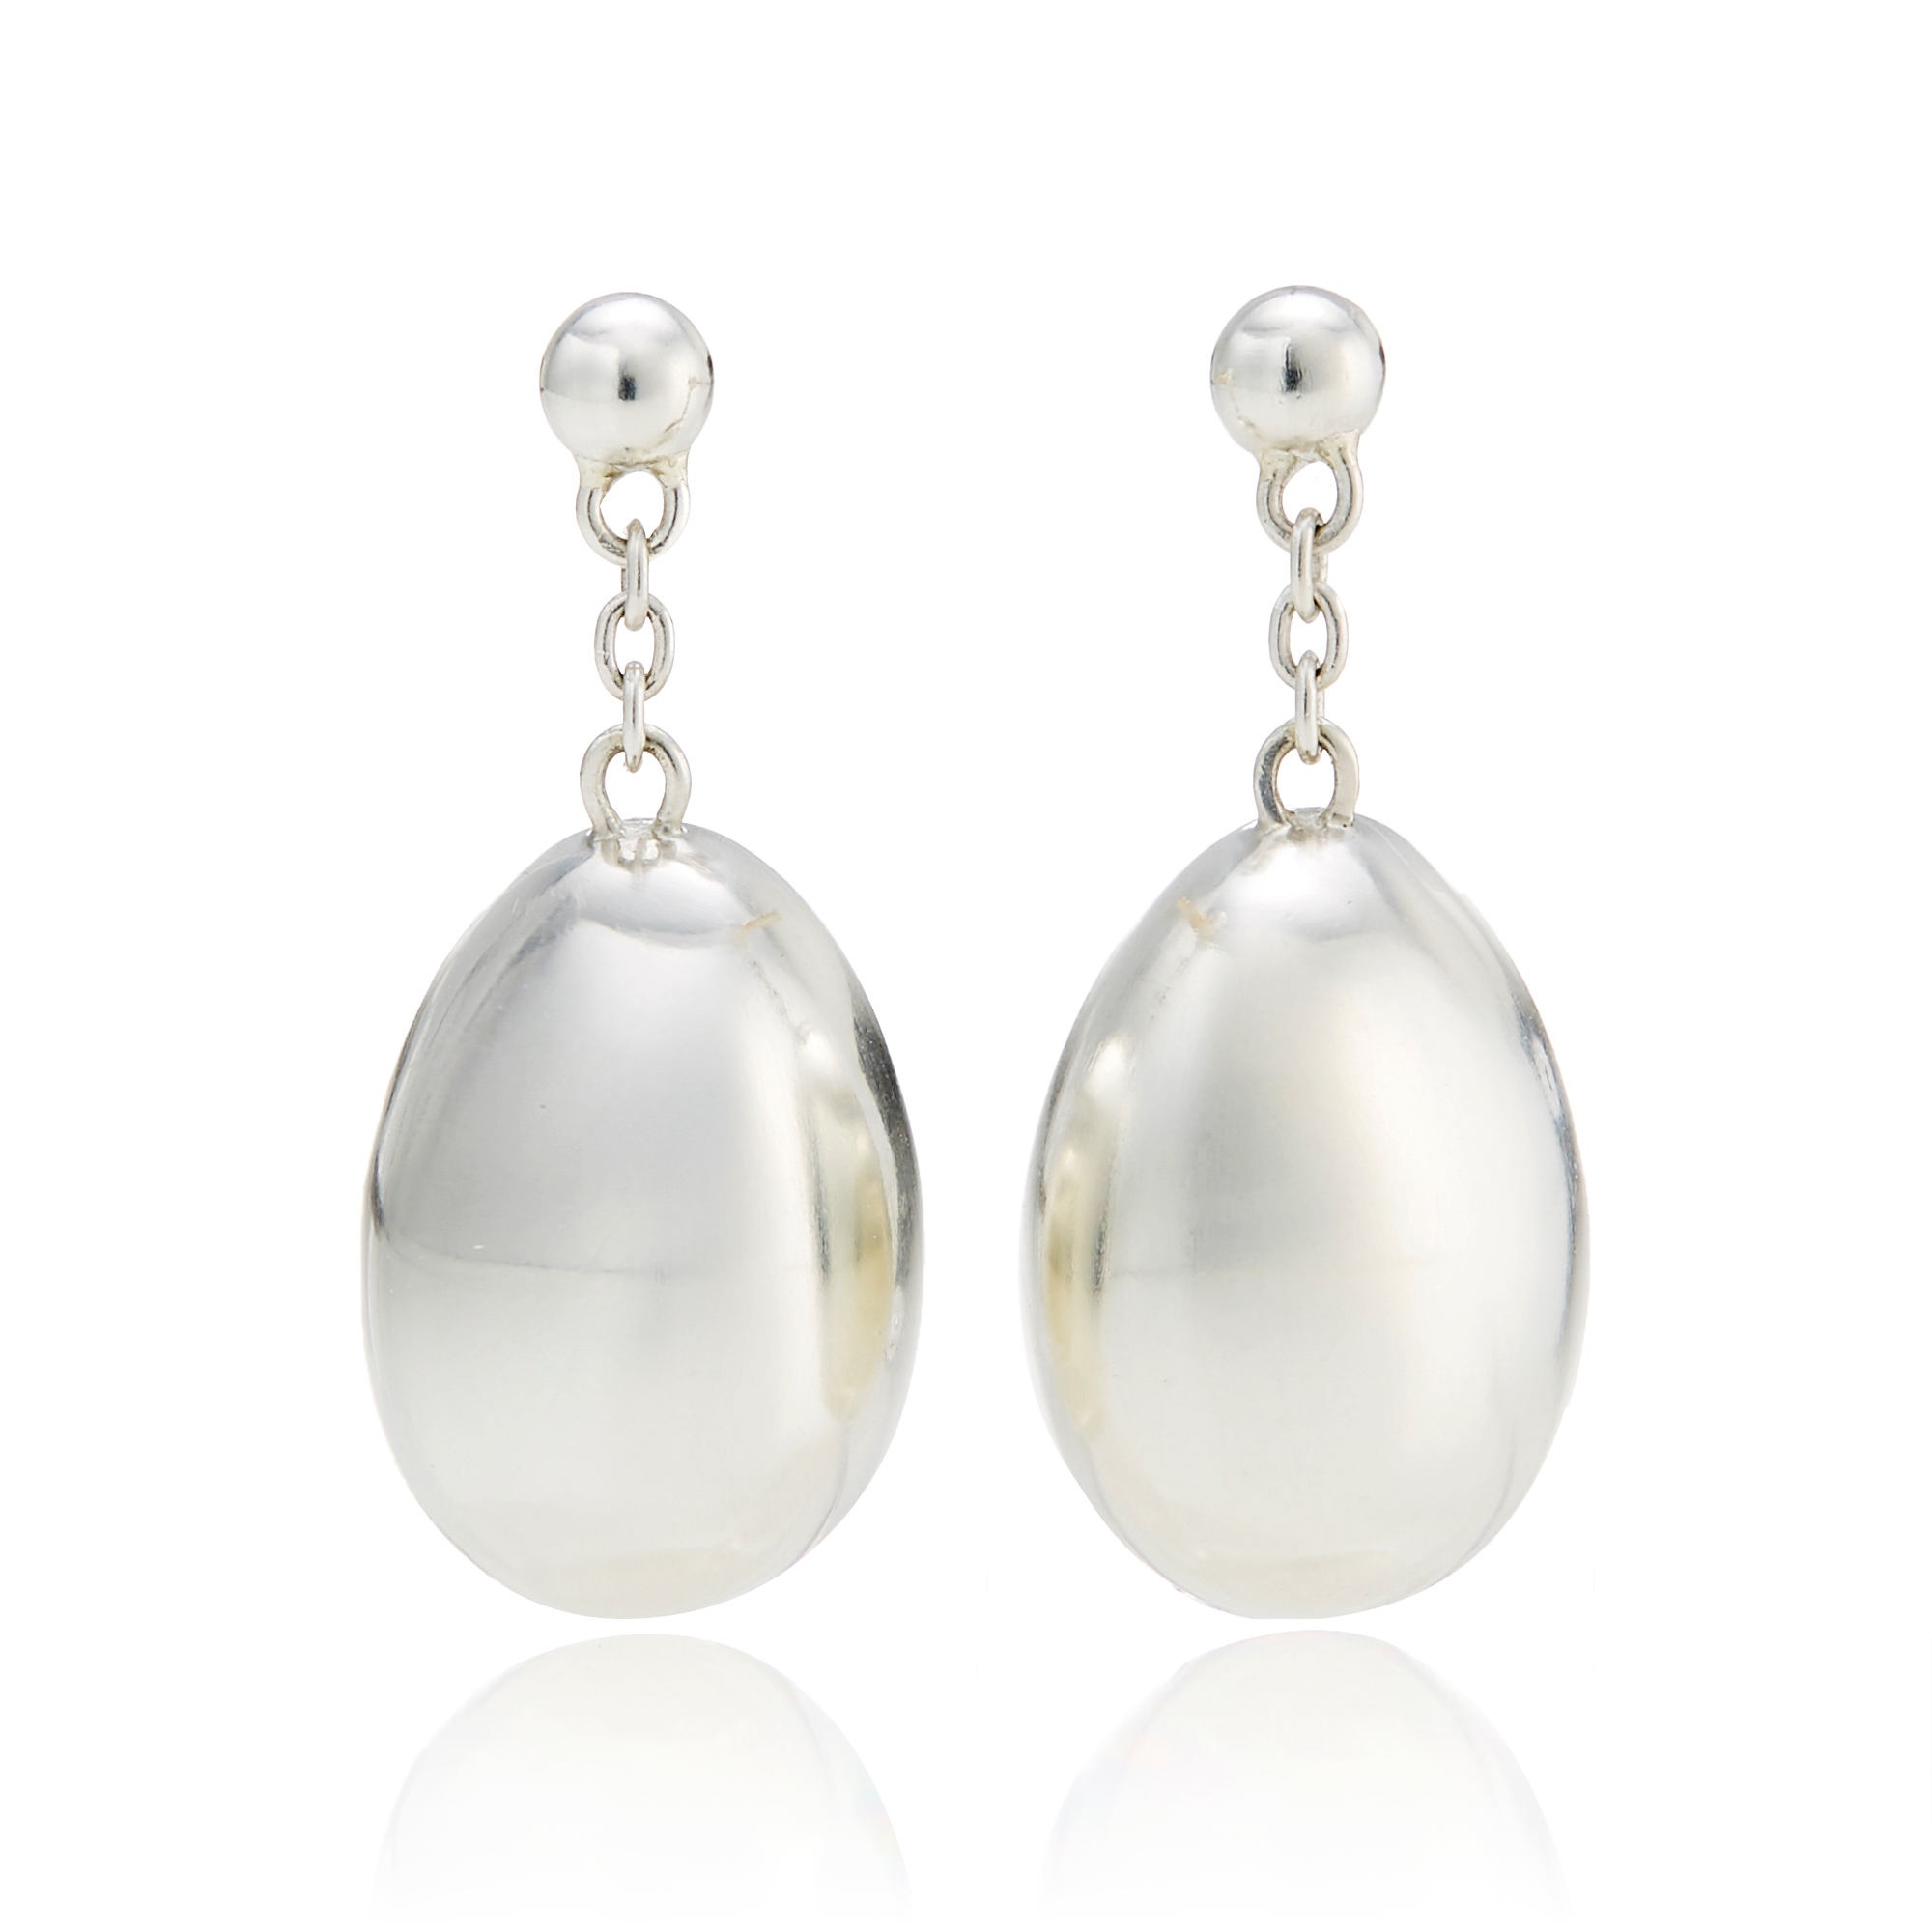 Georg Jensen Astrid Silver Drop Earrings